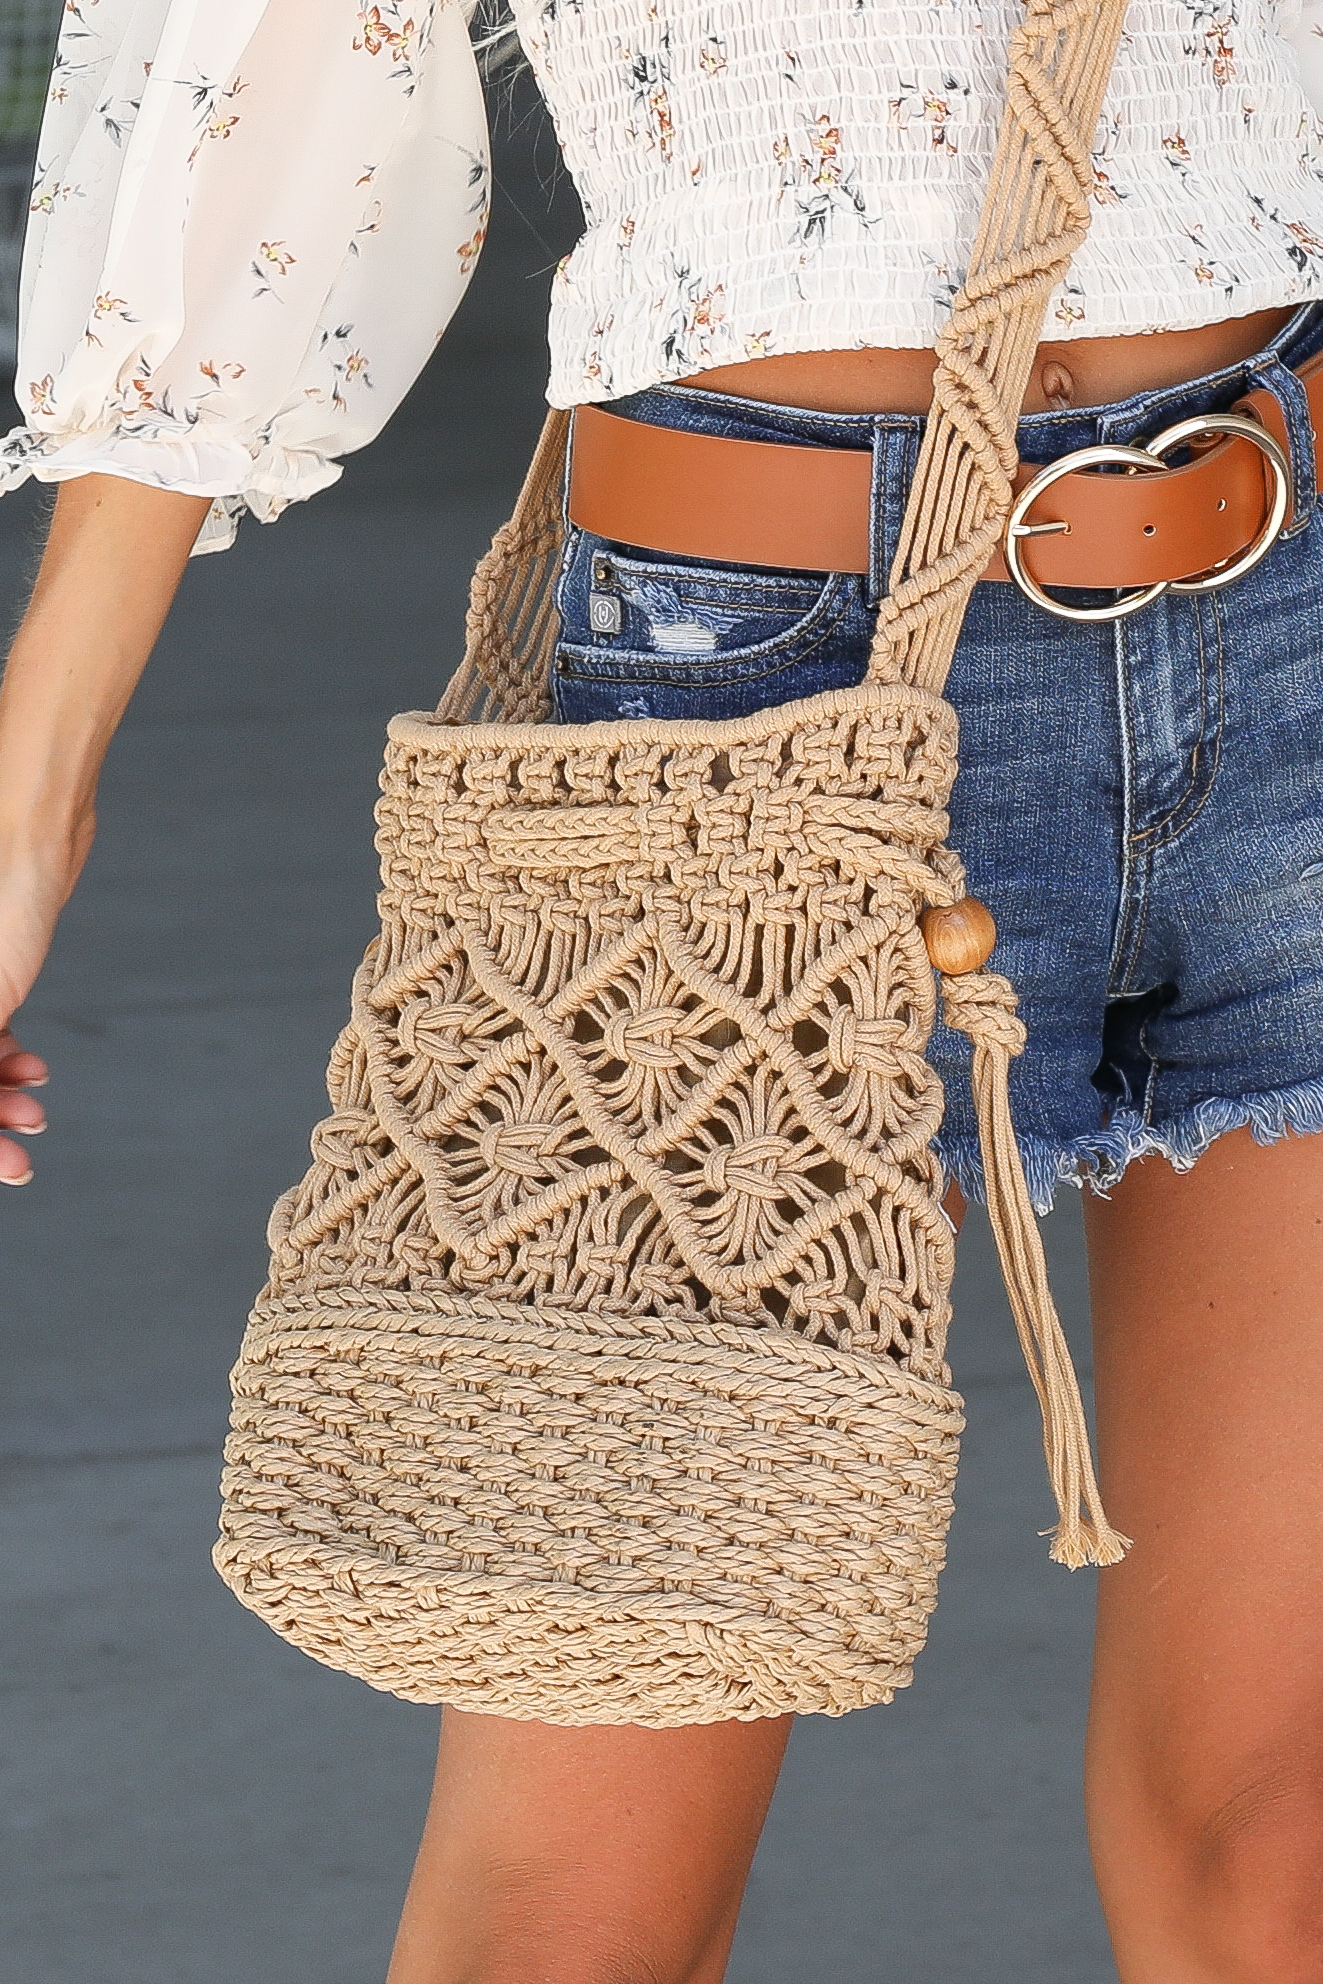 Tan Crocheted Over the Shoulder Bag with Wooden Bead Details